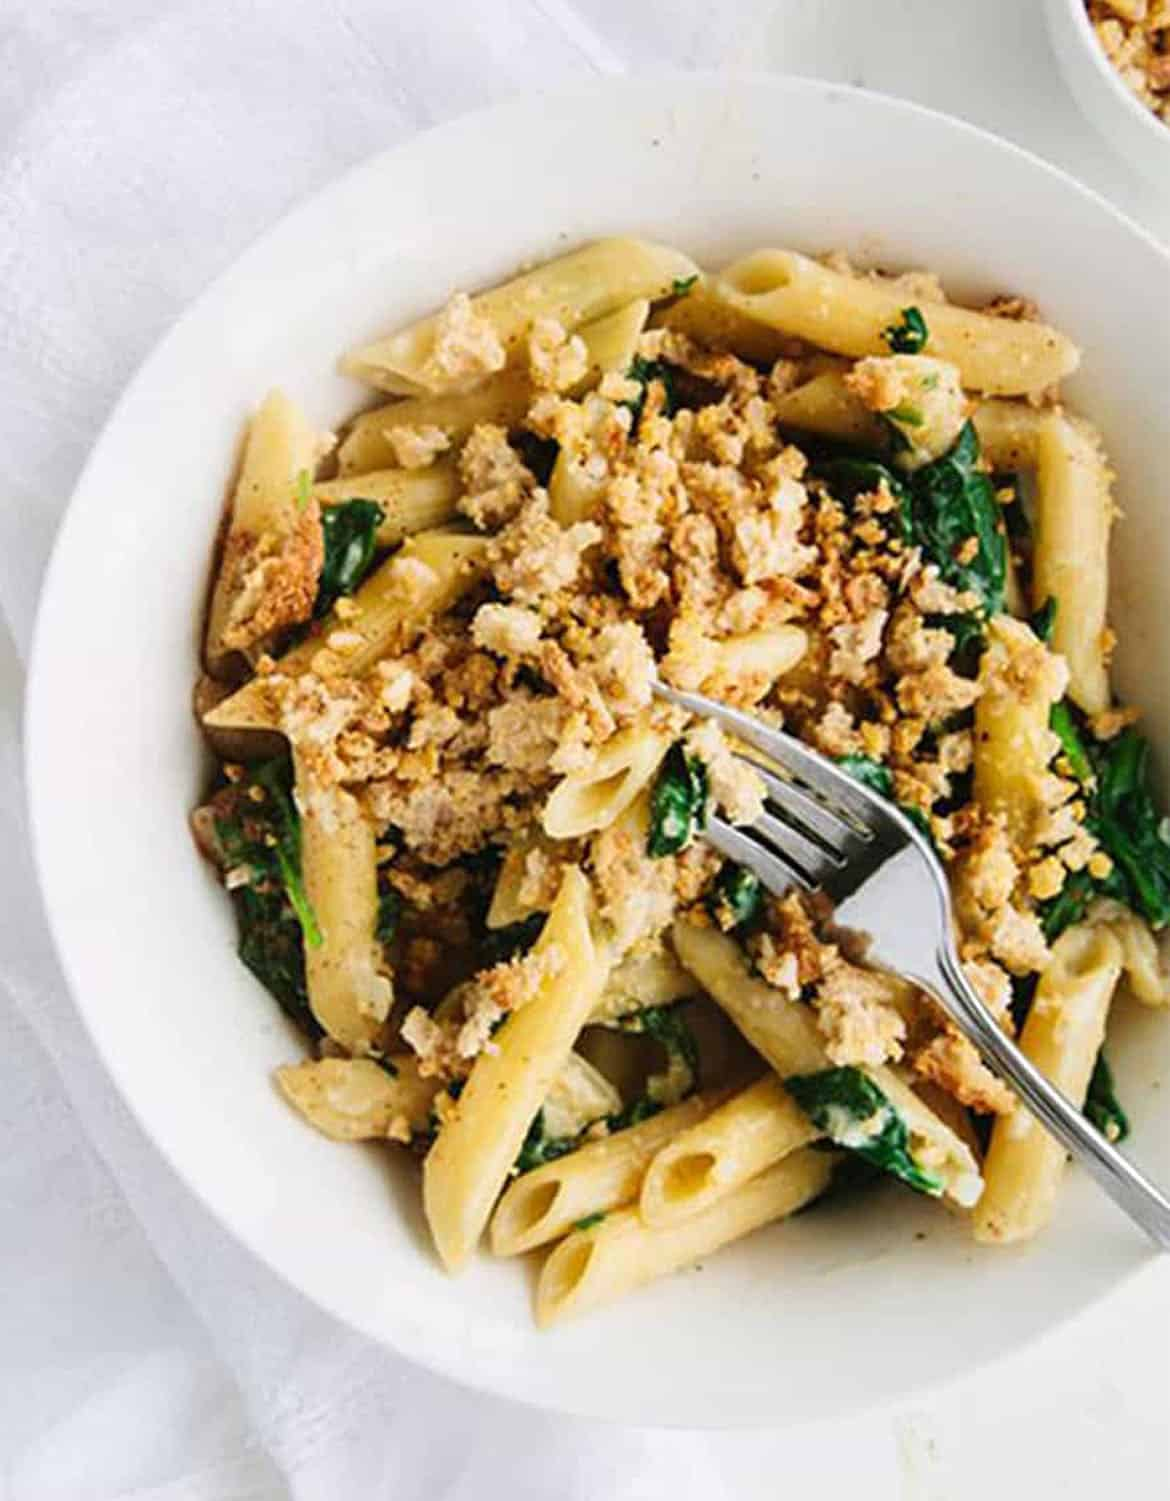 Penne with spinach and breadcrumbs in a white plate with a fork - Wall Flower Kitchen